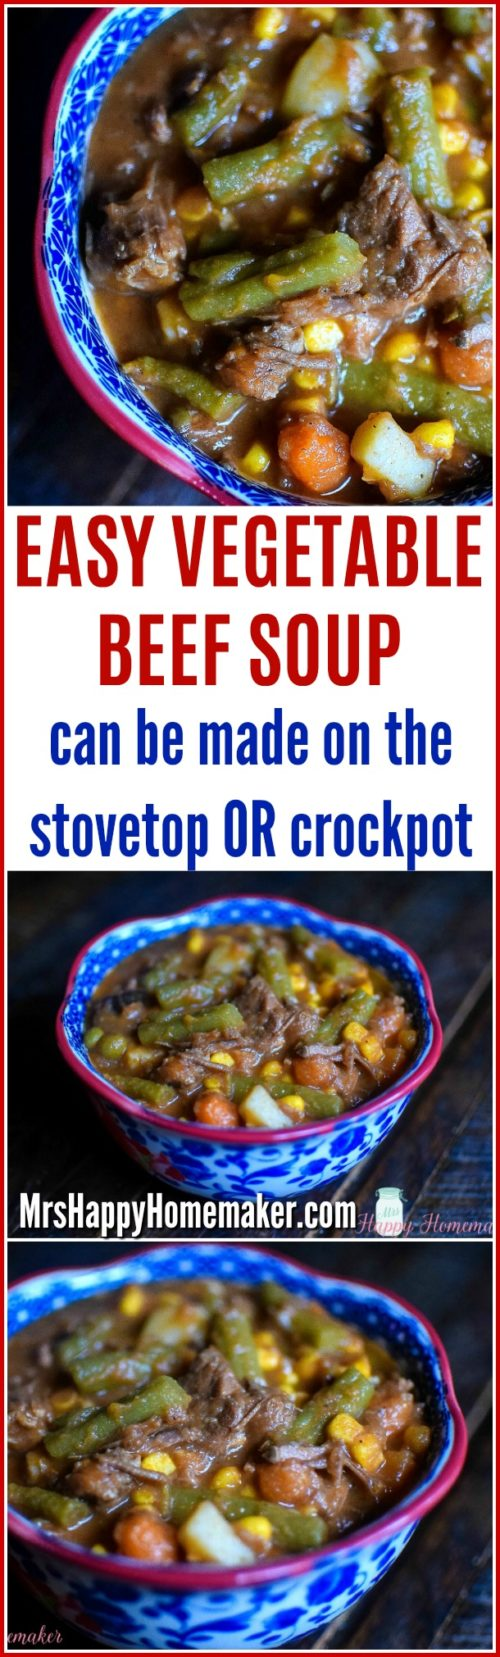 Easy Vegetable Beef Soup - can be made on the stovetop or in the crockpot and it's soooo good! | MrsHappyHomemaker.com @MrsHappyHomemaker